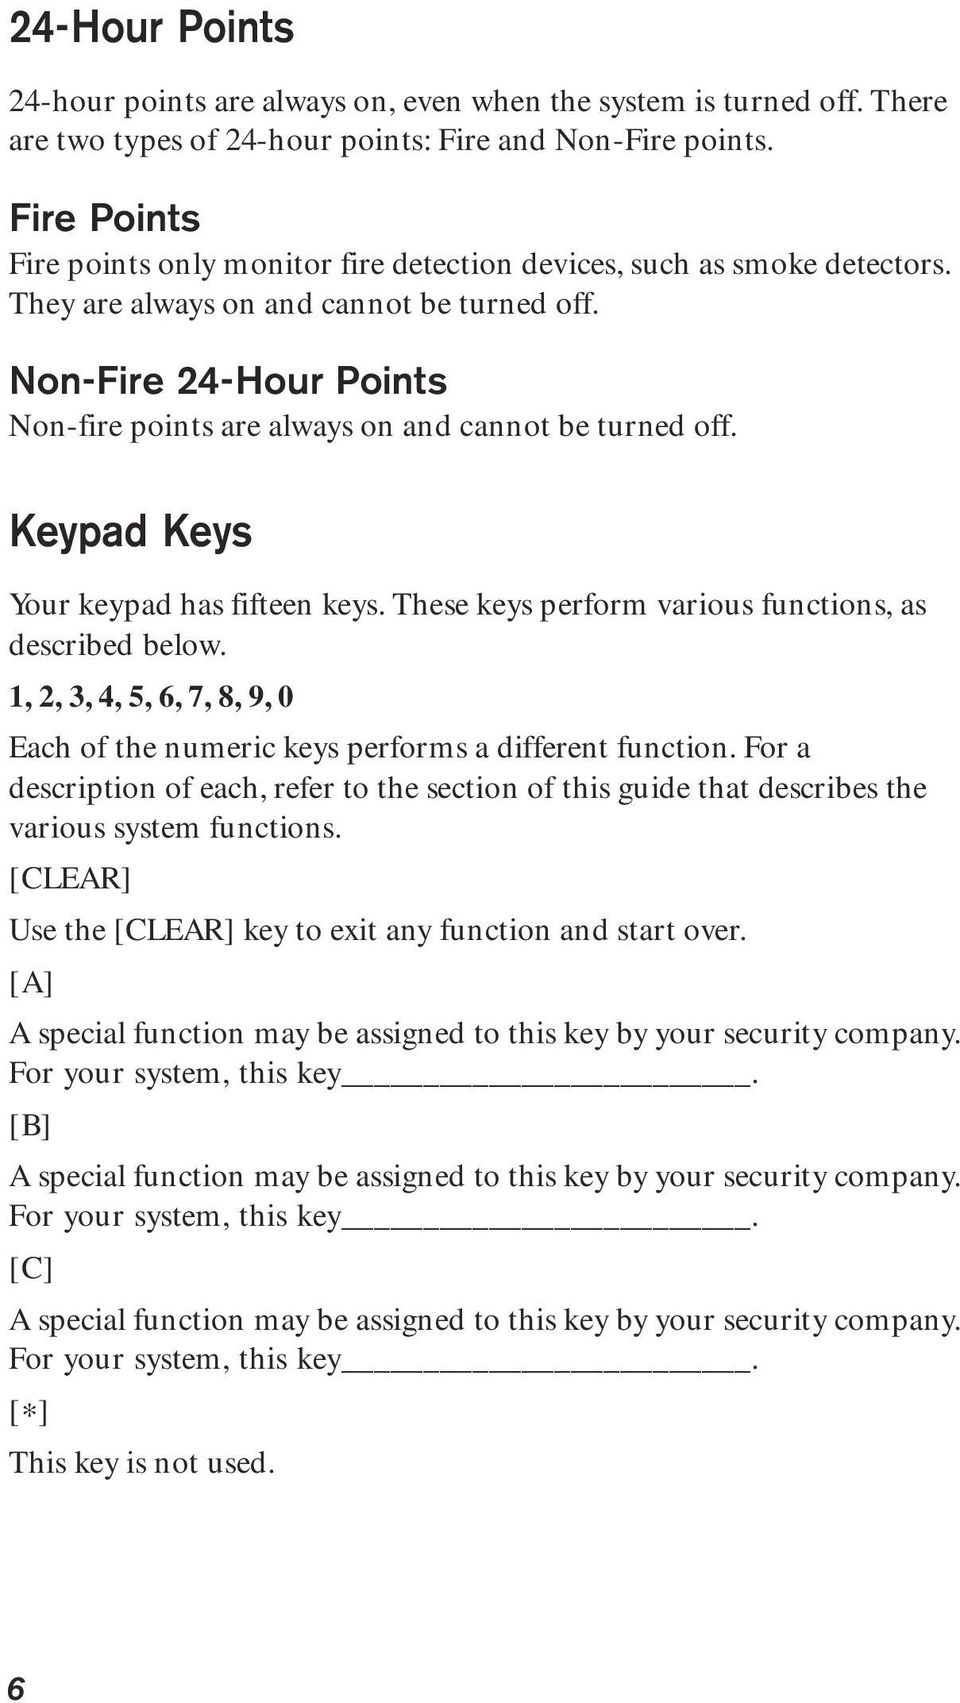 Non-Fire 24-Hour Points Non-fire points are always on and cannot be turned off. Keypad Keys Your keypad has fifteen keys. These keys perform various functions, as described below.